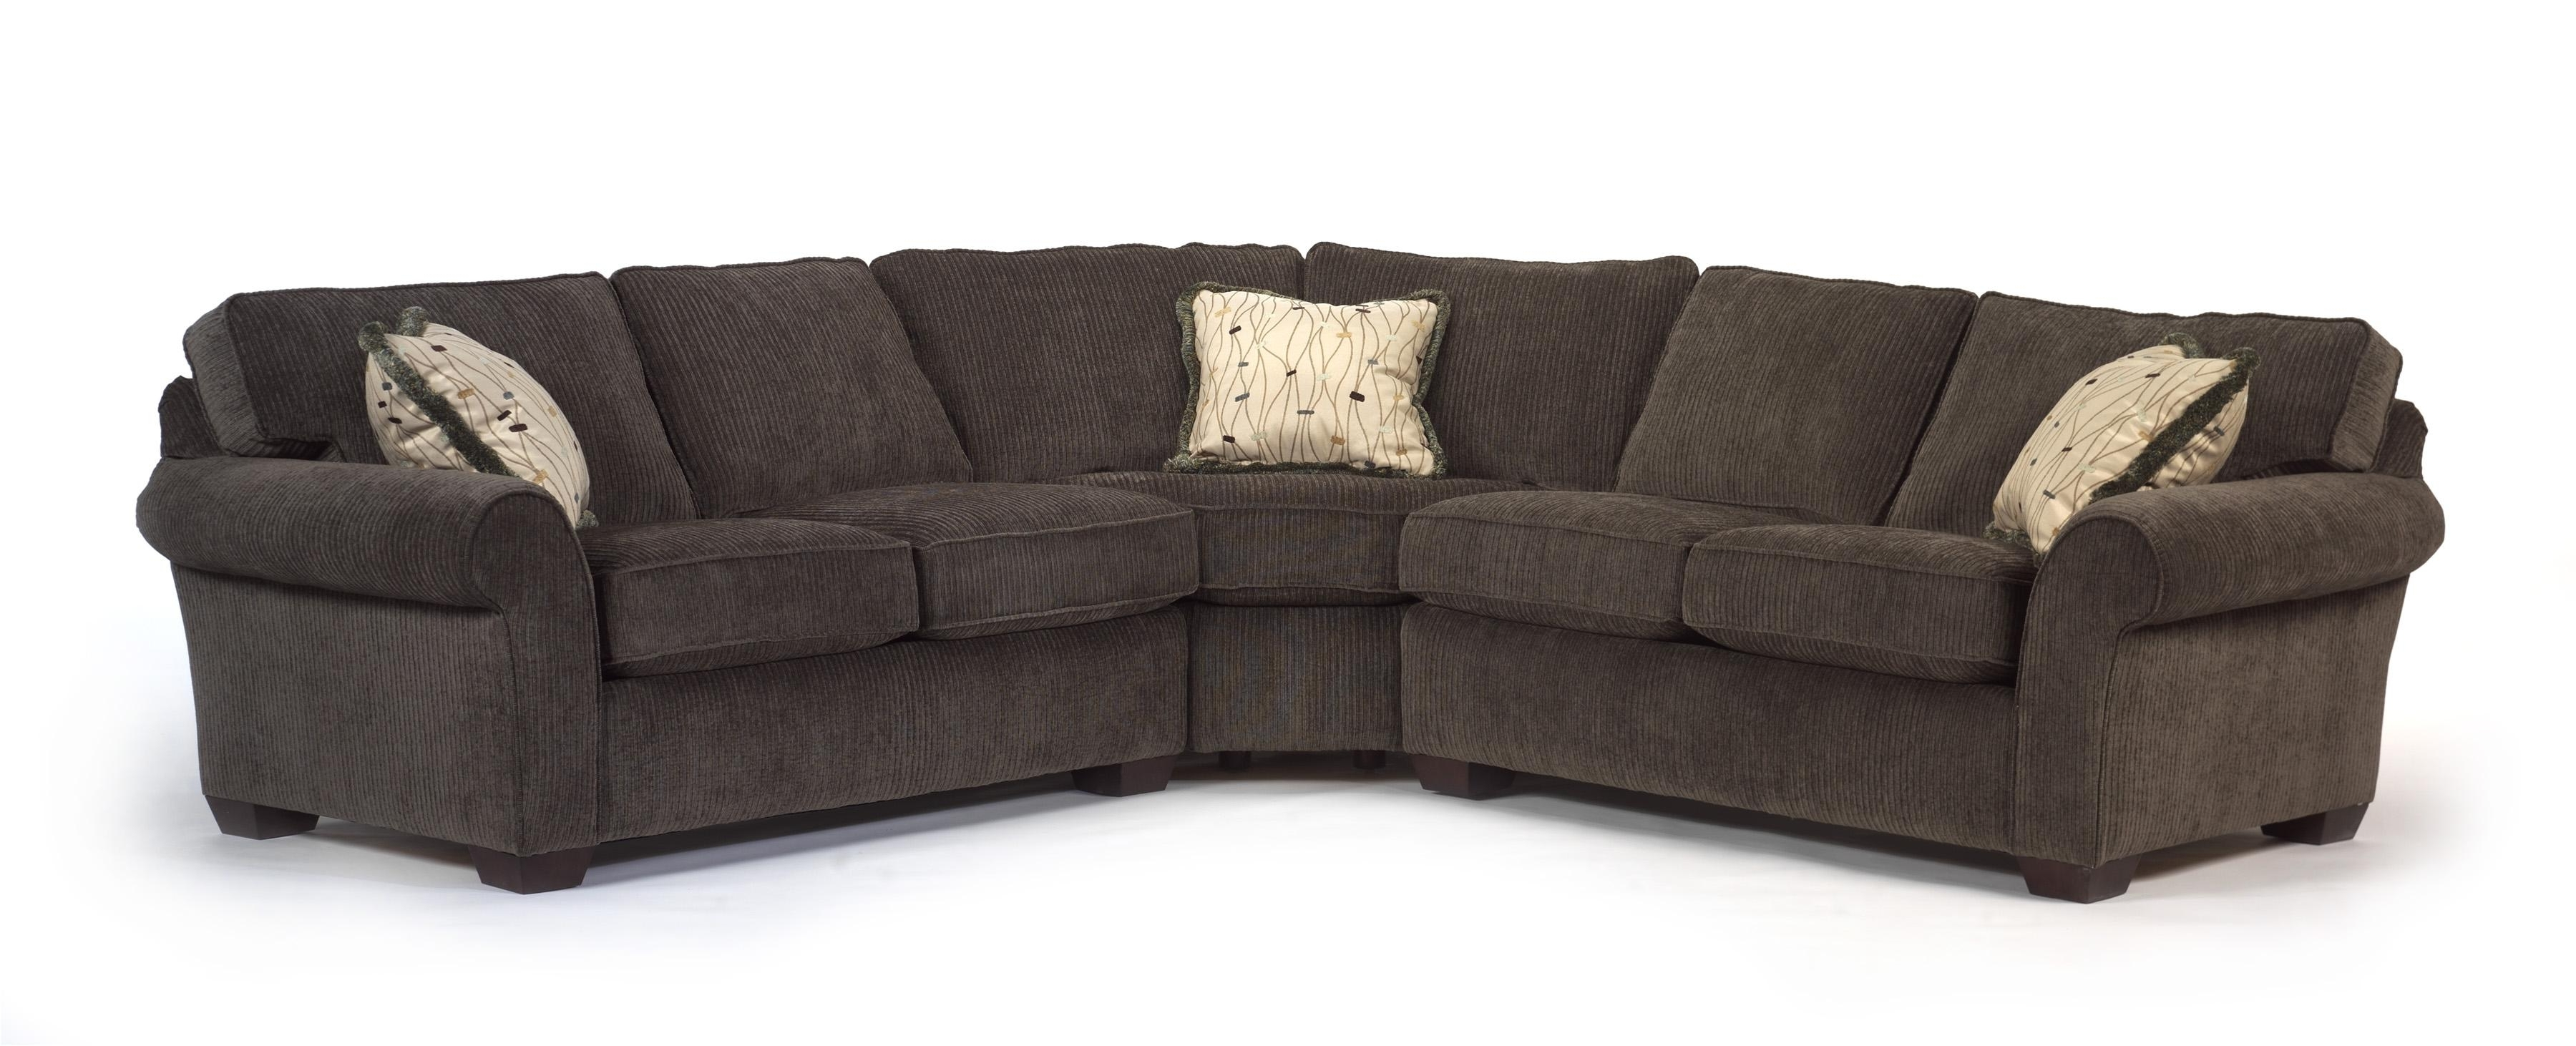 Flexsteel Vail Corner Sectional Sofa – Ahfa – Sofa Sectional Throughout Trendy Kansas City Sectional Sofas (View 14 of 15)